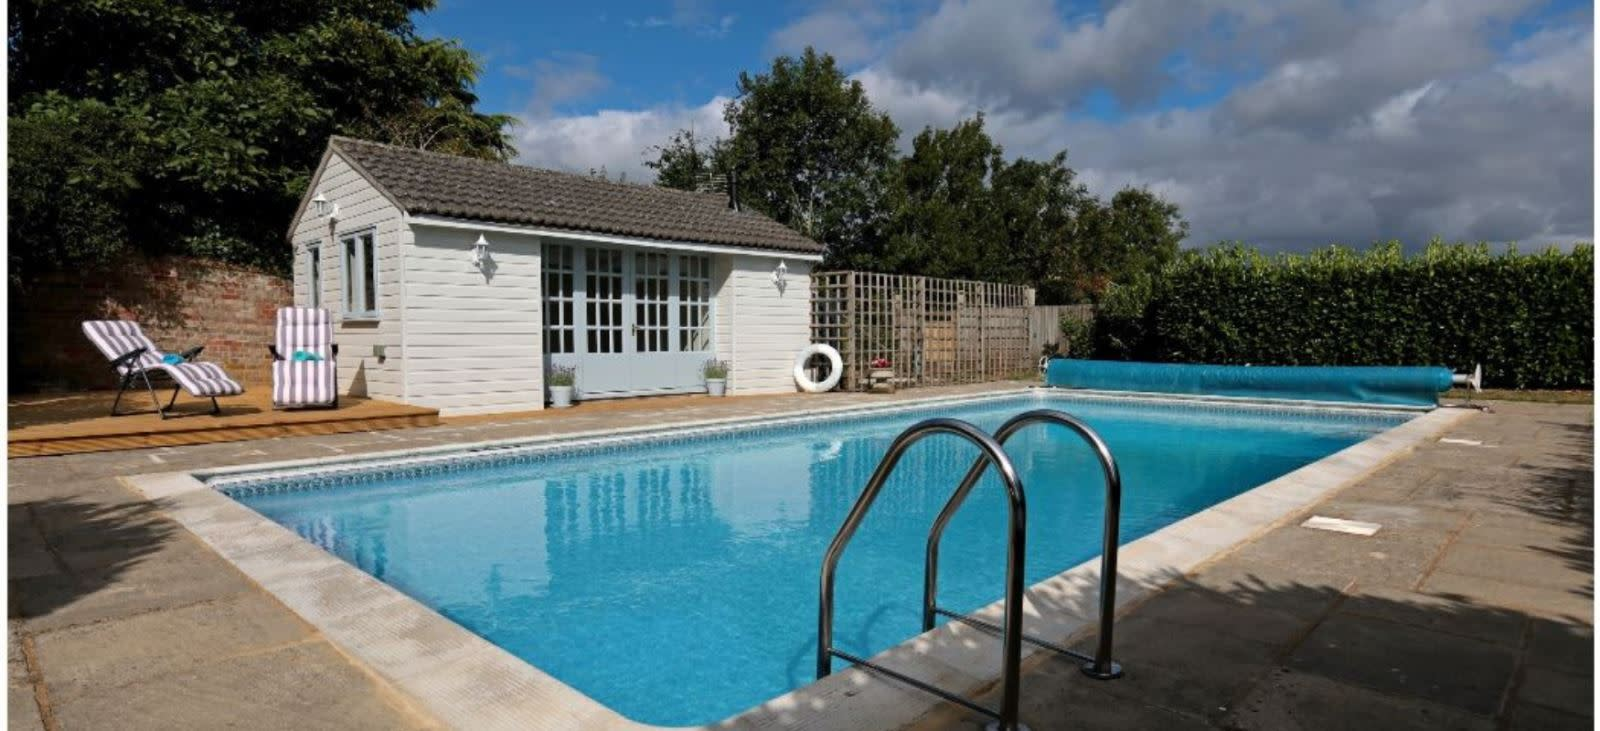 Outdoor swimming pool at Stable Cottage near Dorchester, Dorset